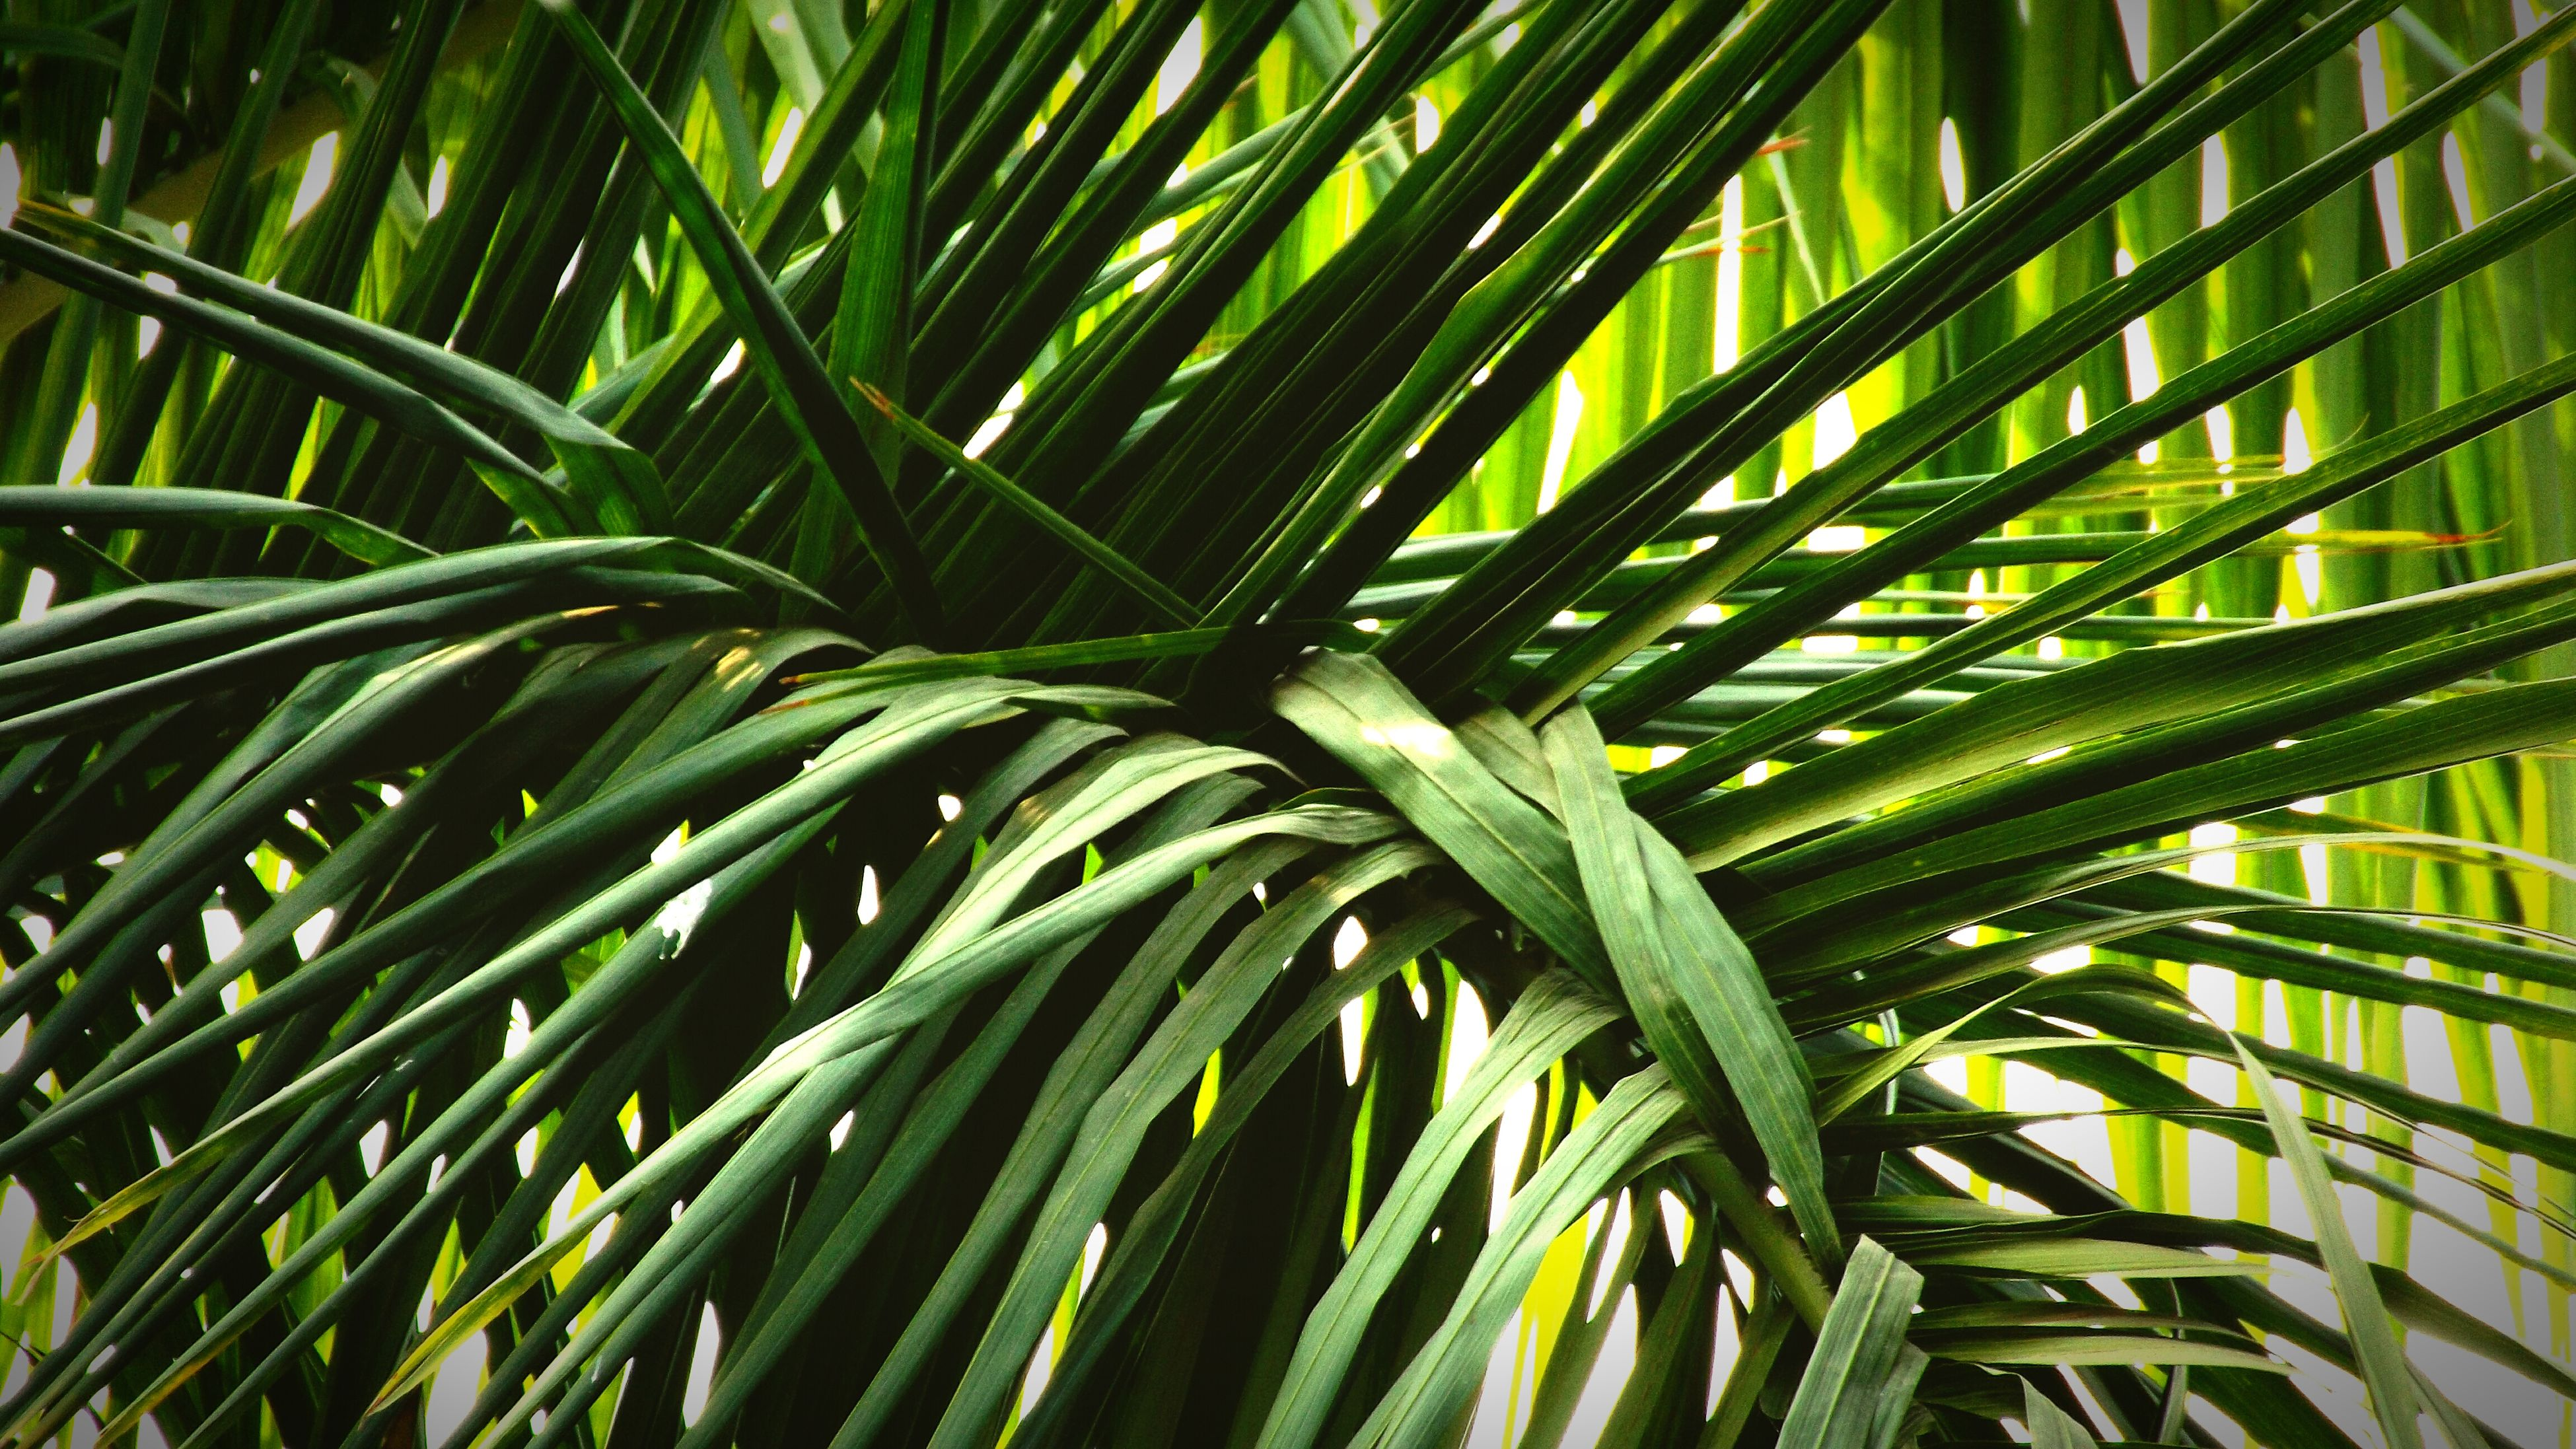 palm tree, growth, leaf, green color, palm leaf, nature, tree, plant, beauty in nature, low angle view, tranquility, full frame, day, backgrounds, leaves, outdoors, sunlight, close-up, green, no people